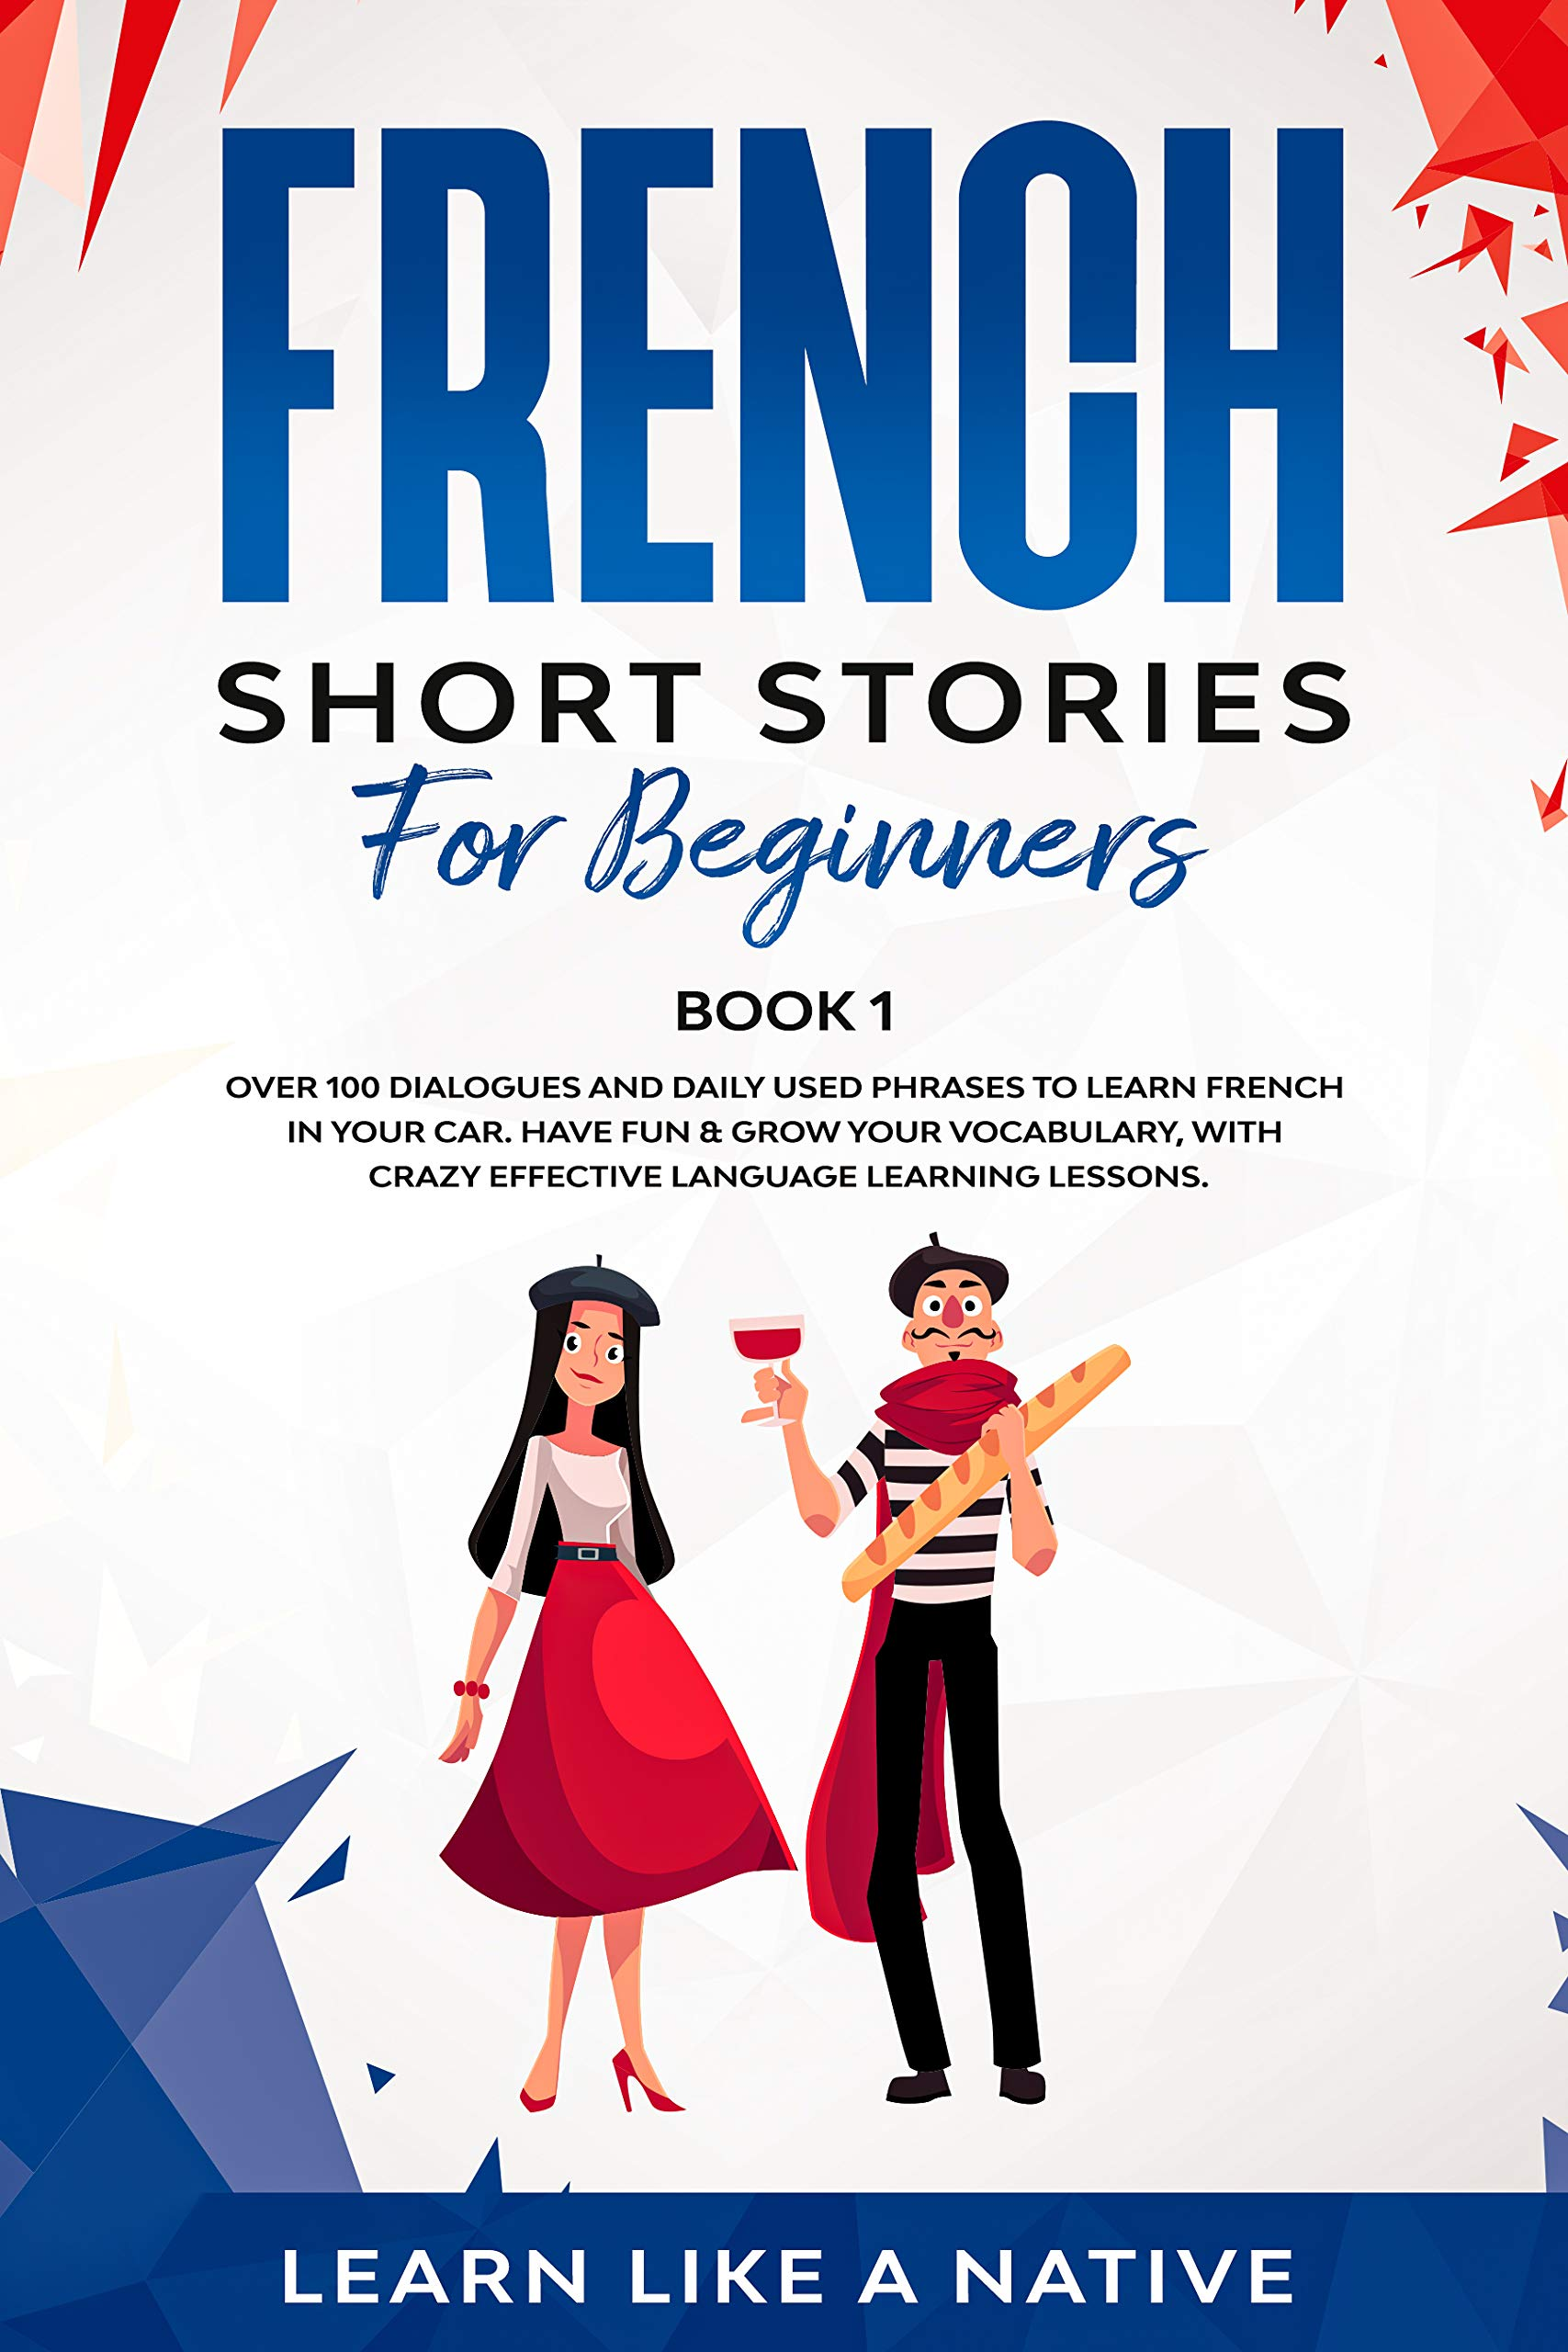 French Short Stories for Beginners Book 1: Over 100 Dialogues and Daily Used Phrases to Learn French in Your Car. Have Fun & Grow Your Vocabulary, with ... Lessons